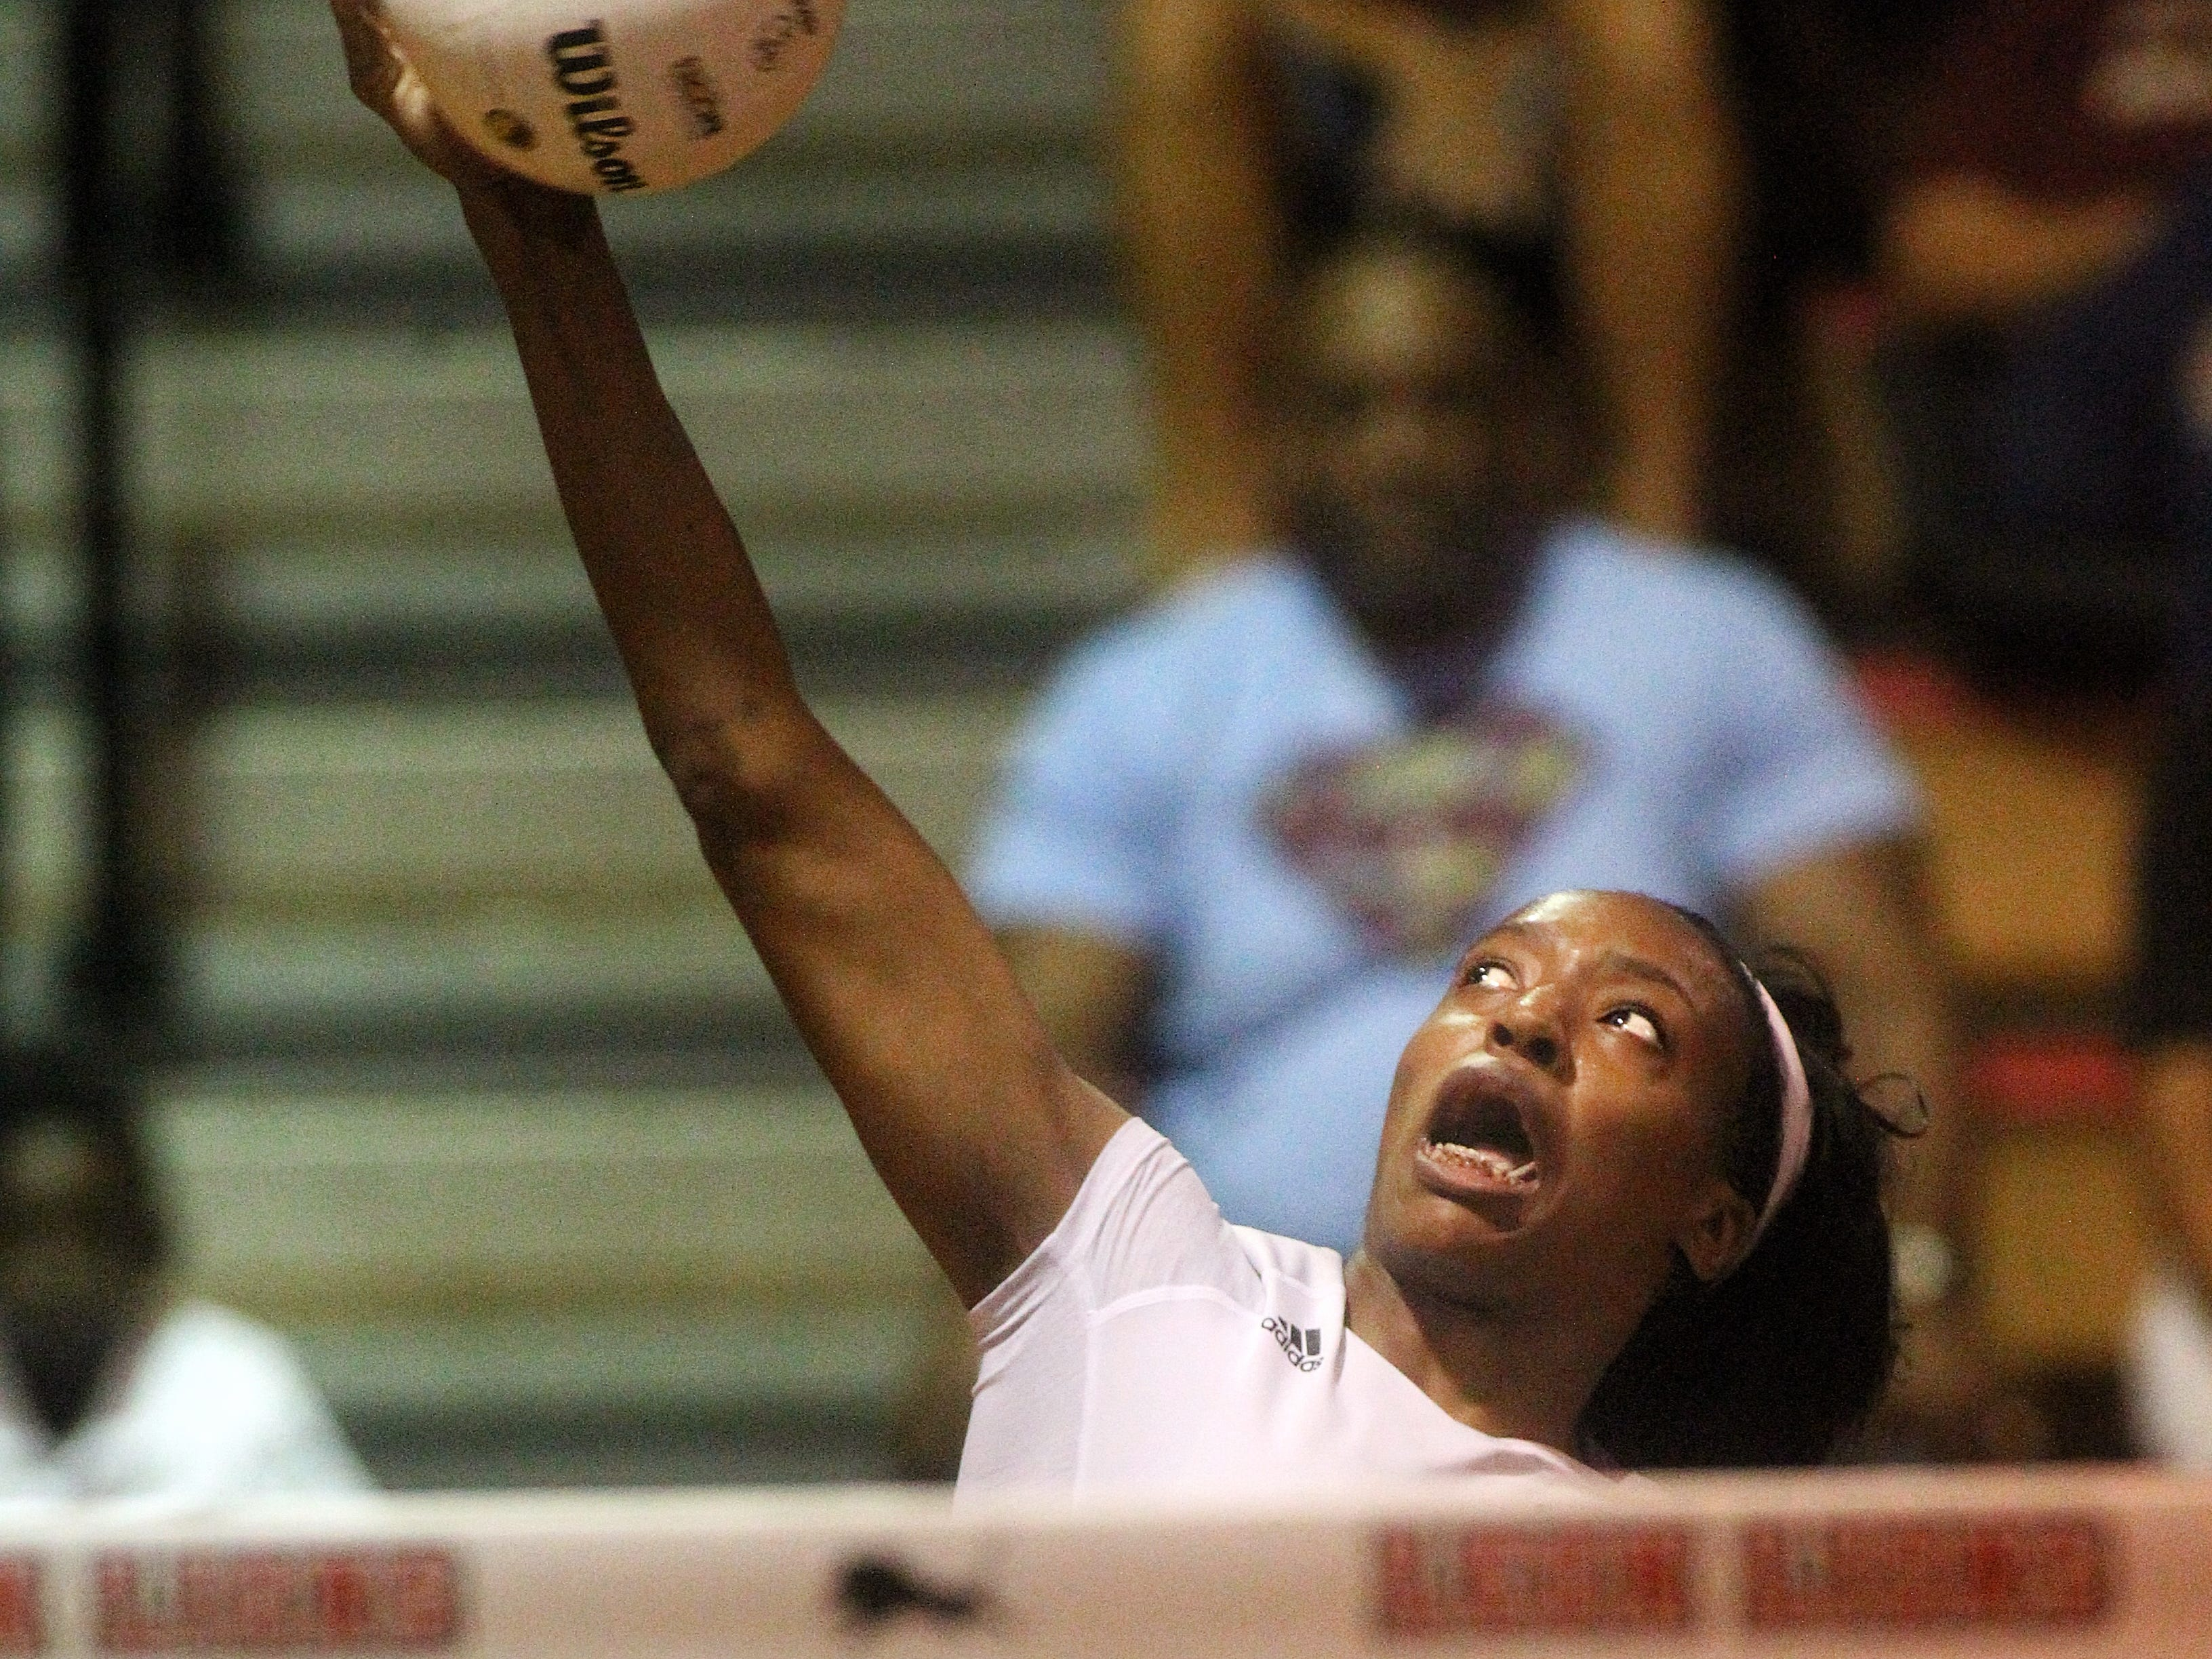 Florida High's Jada Rhodes goes up for a kill during a preseason match Saturday against Leon.